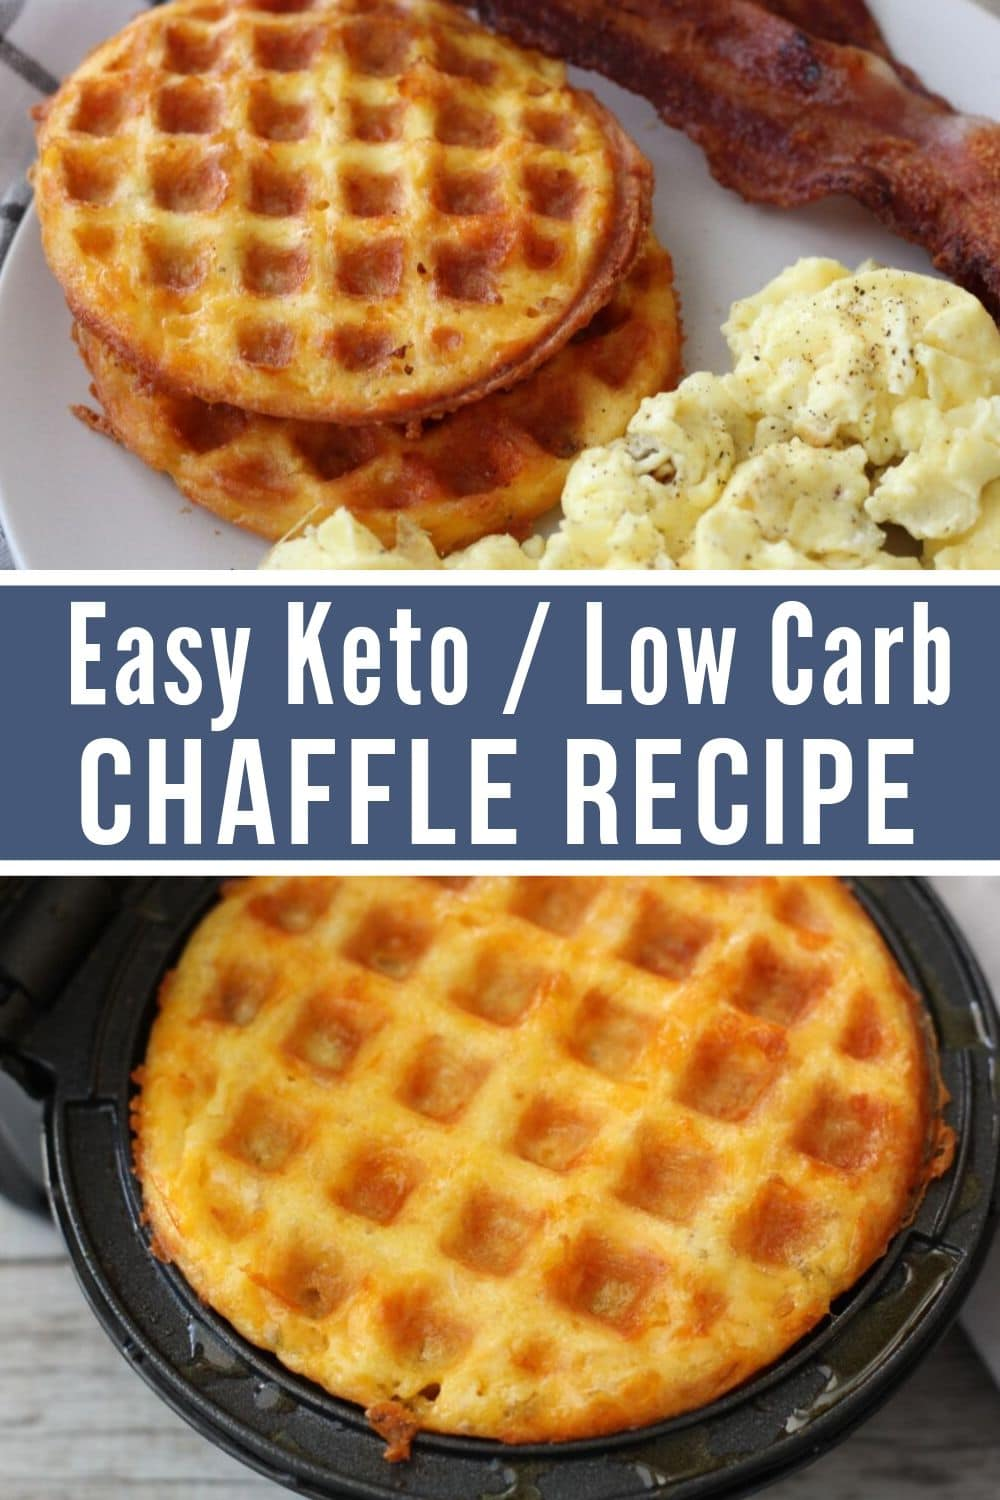 collage of keto chaffle recipe one chaffle plated the other in the waffle maker